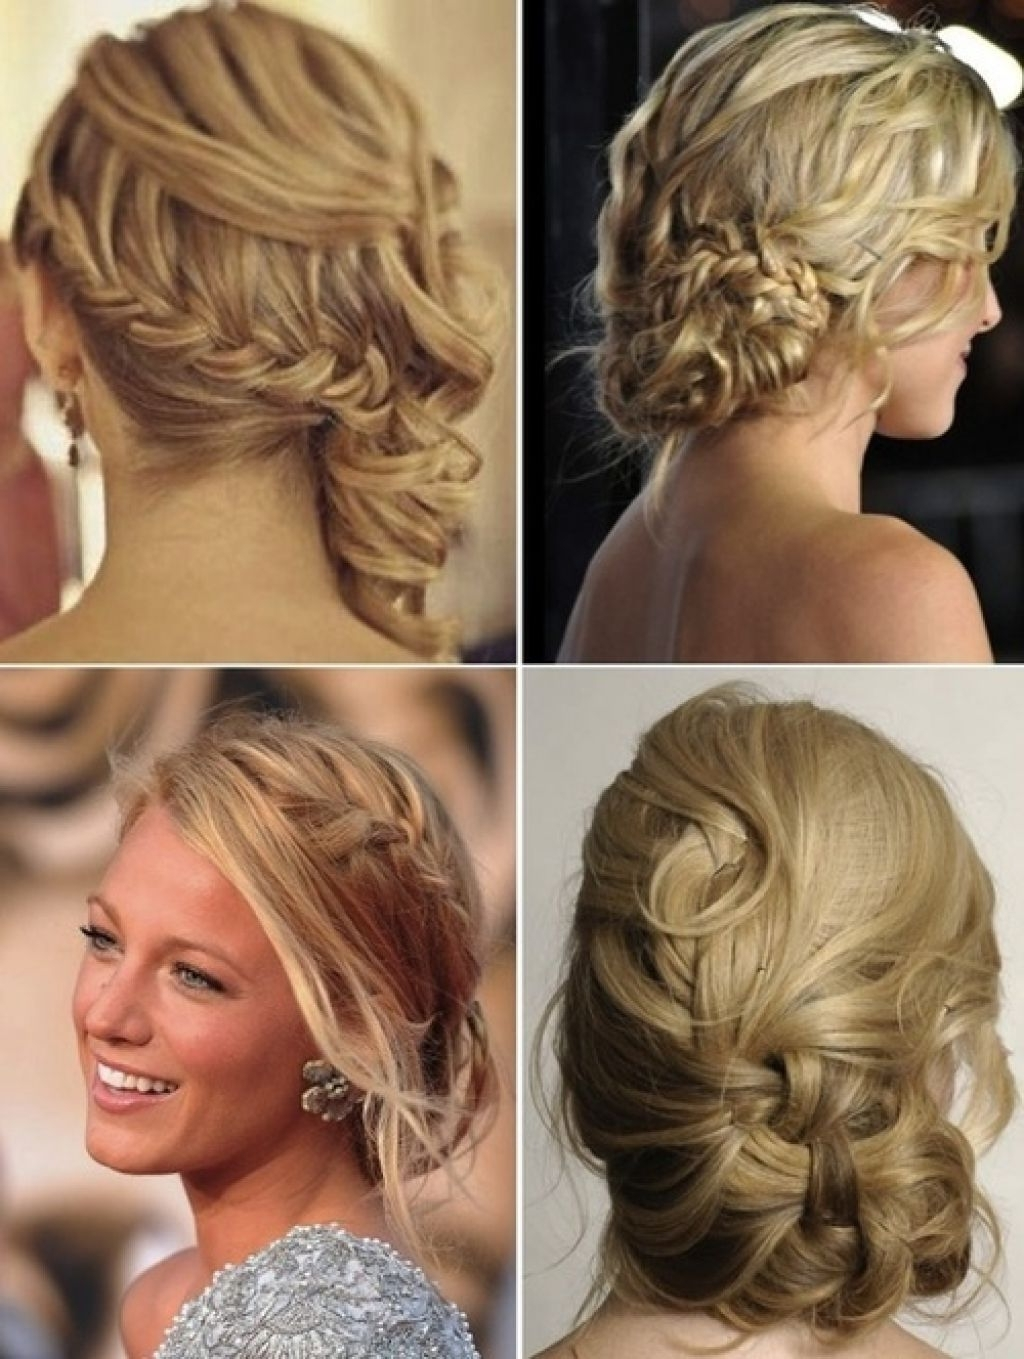 Newest Wedding Hairstyles For Medium Length Thick Hair With Casual Wedding Hairstyles For Long Hair – Hairstyle For Women & Man (View 11 of 15)